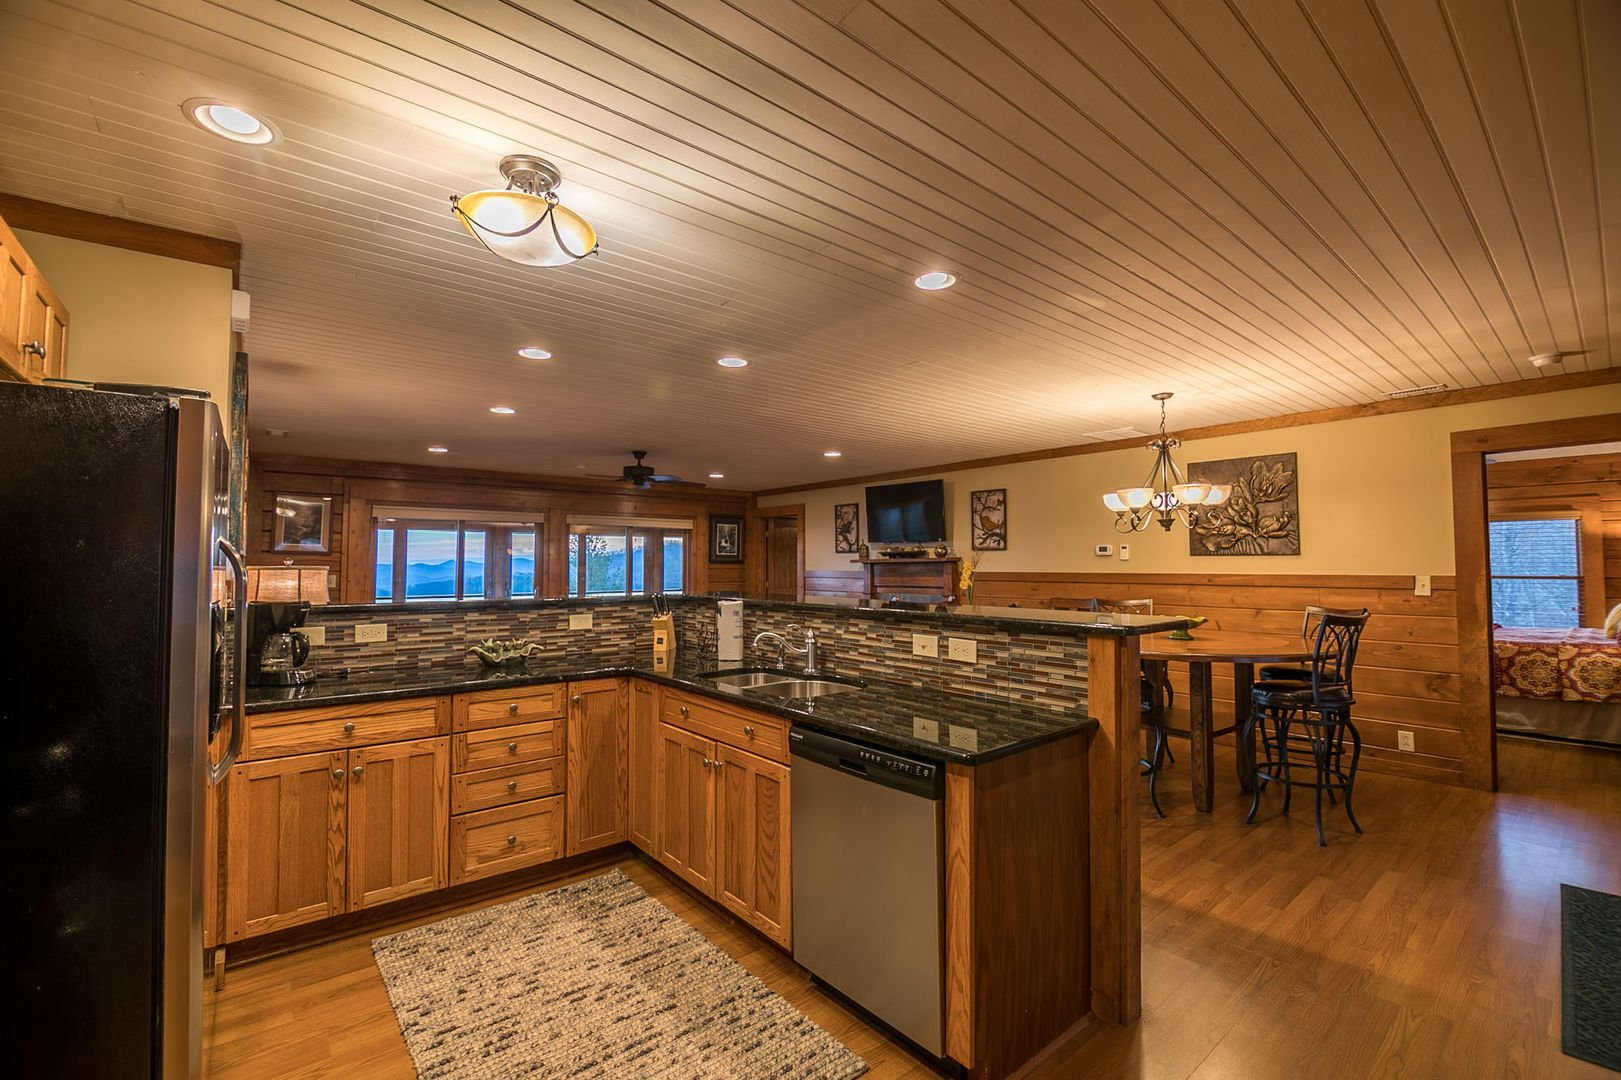 Kitchen with stainless steel appliances and granite counters